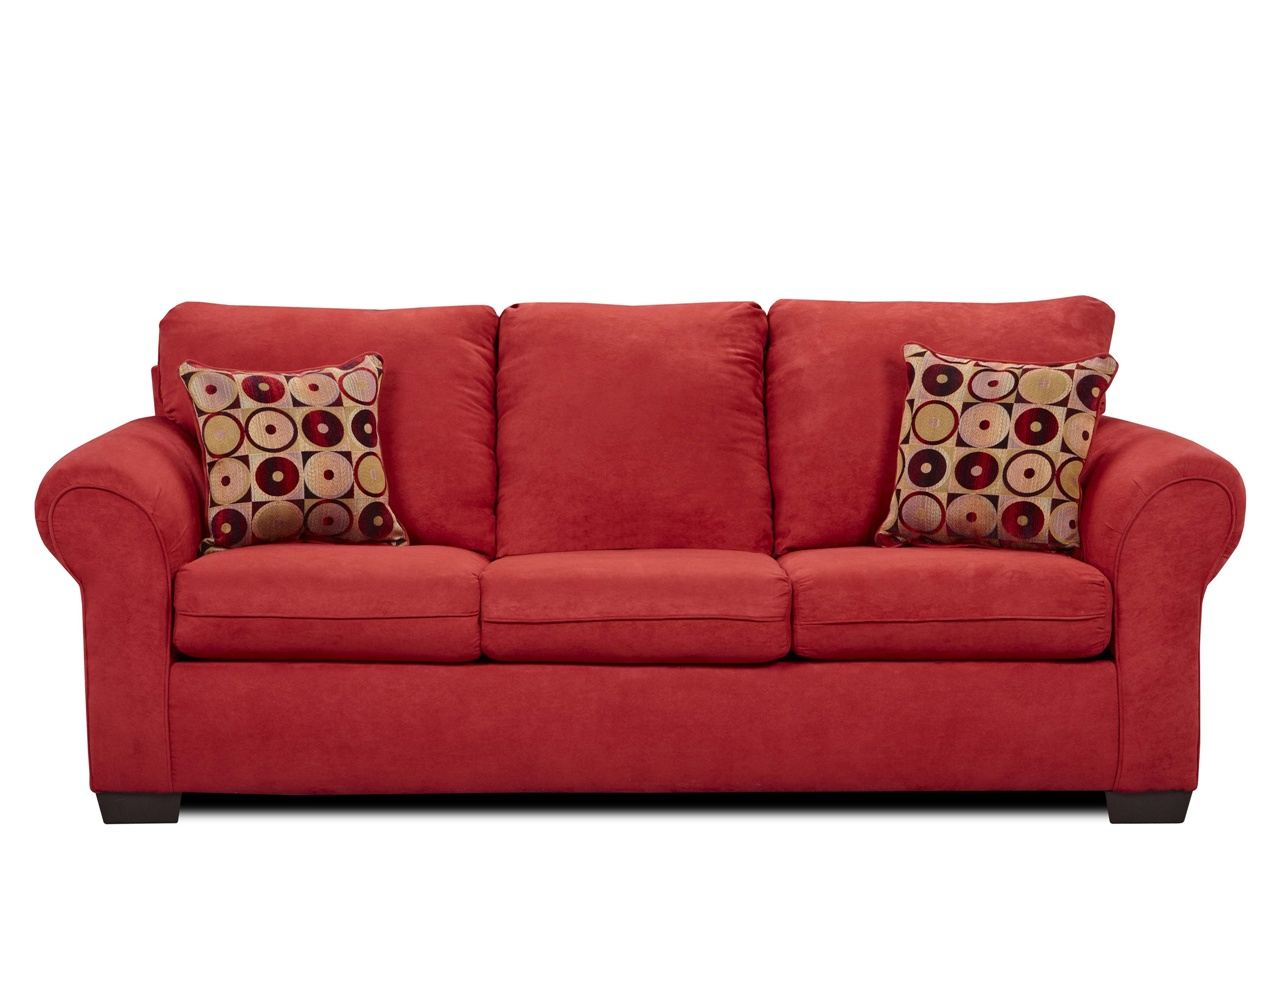 Cute Cheapest Couches Available Online Couch Sofa Ideas Interior Design